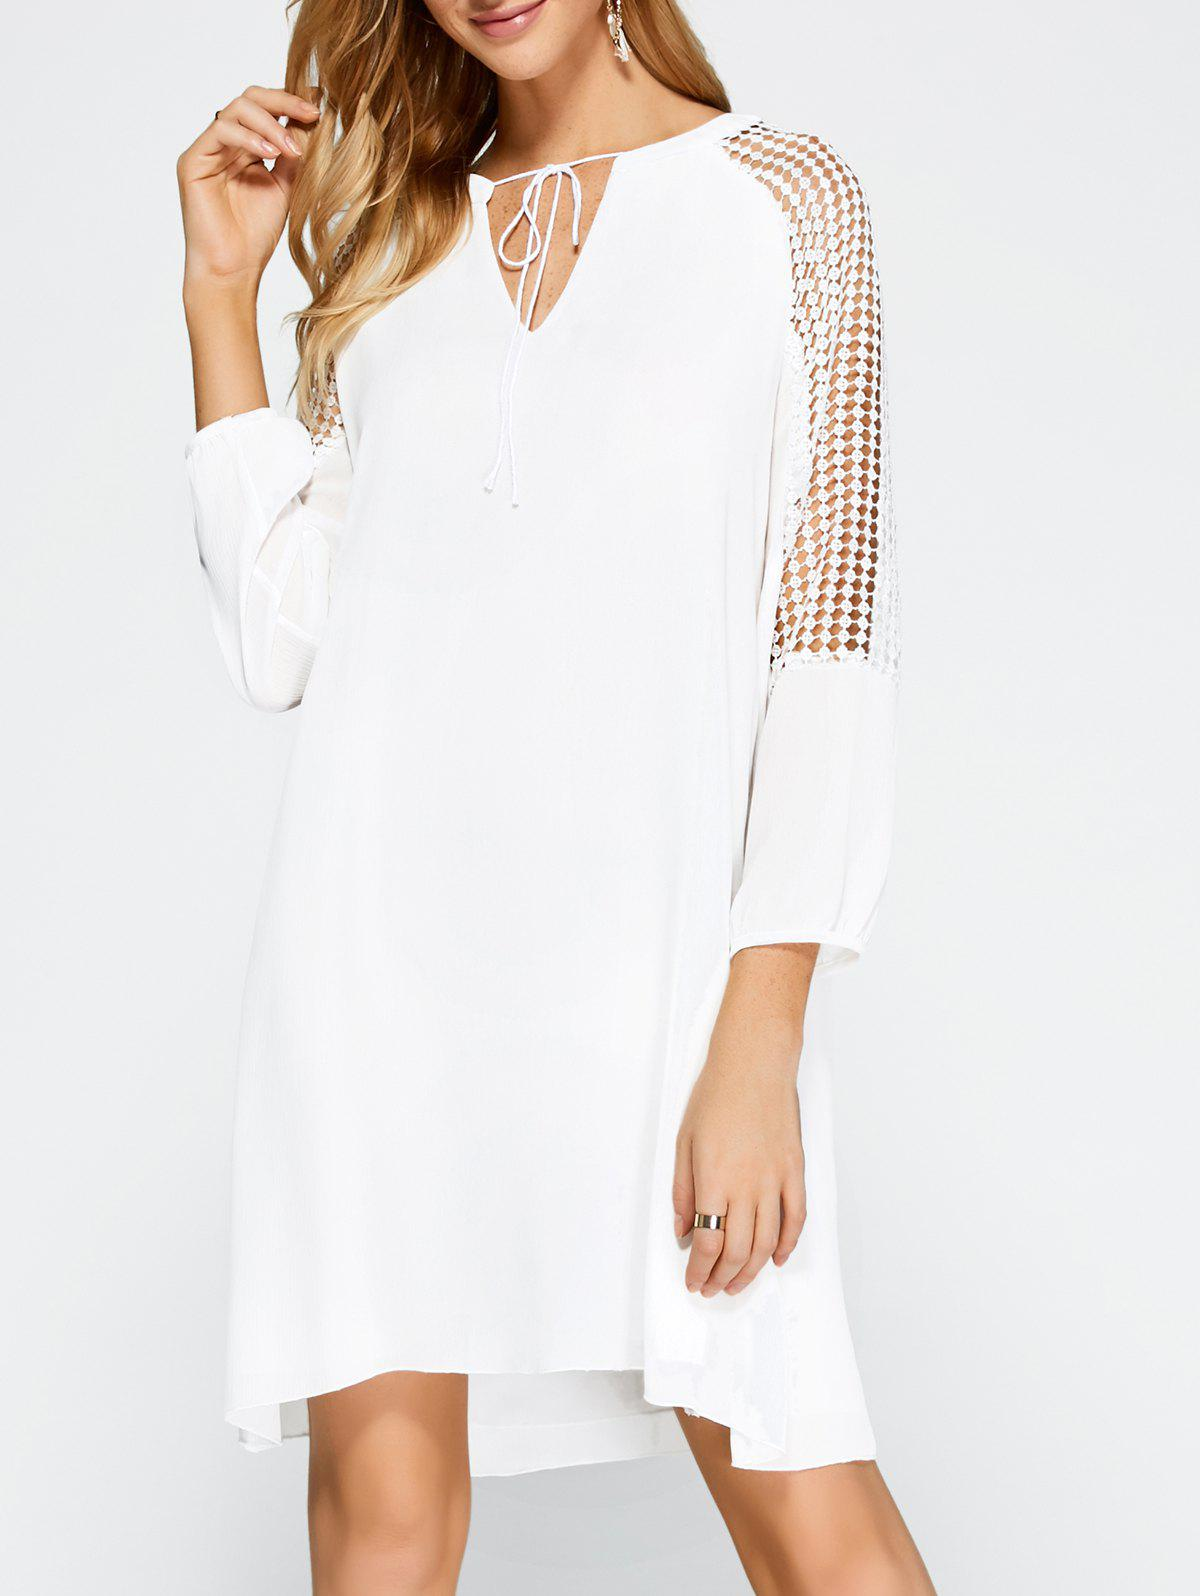 Casual Openwork Lace Insert Dress - WHITE S